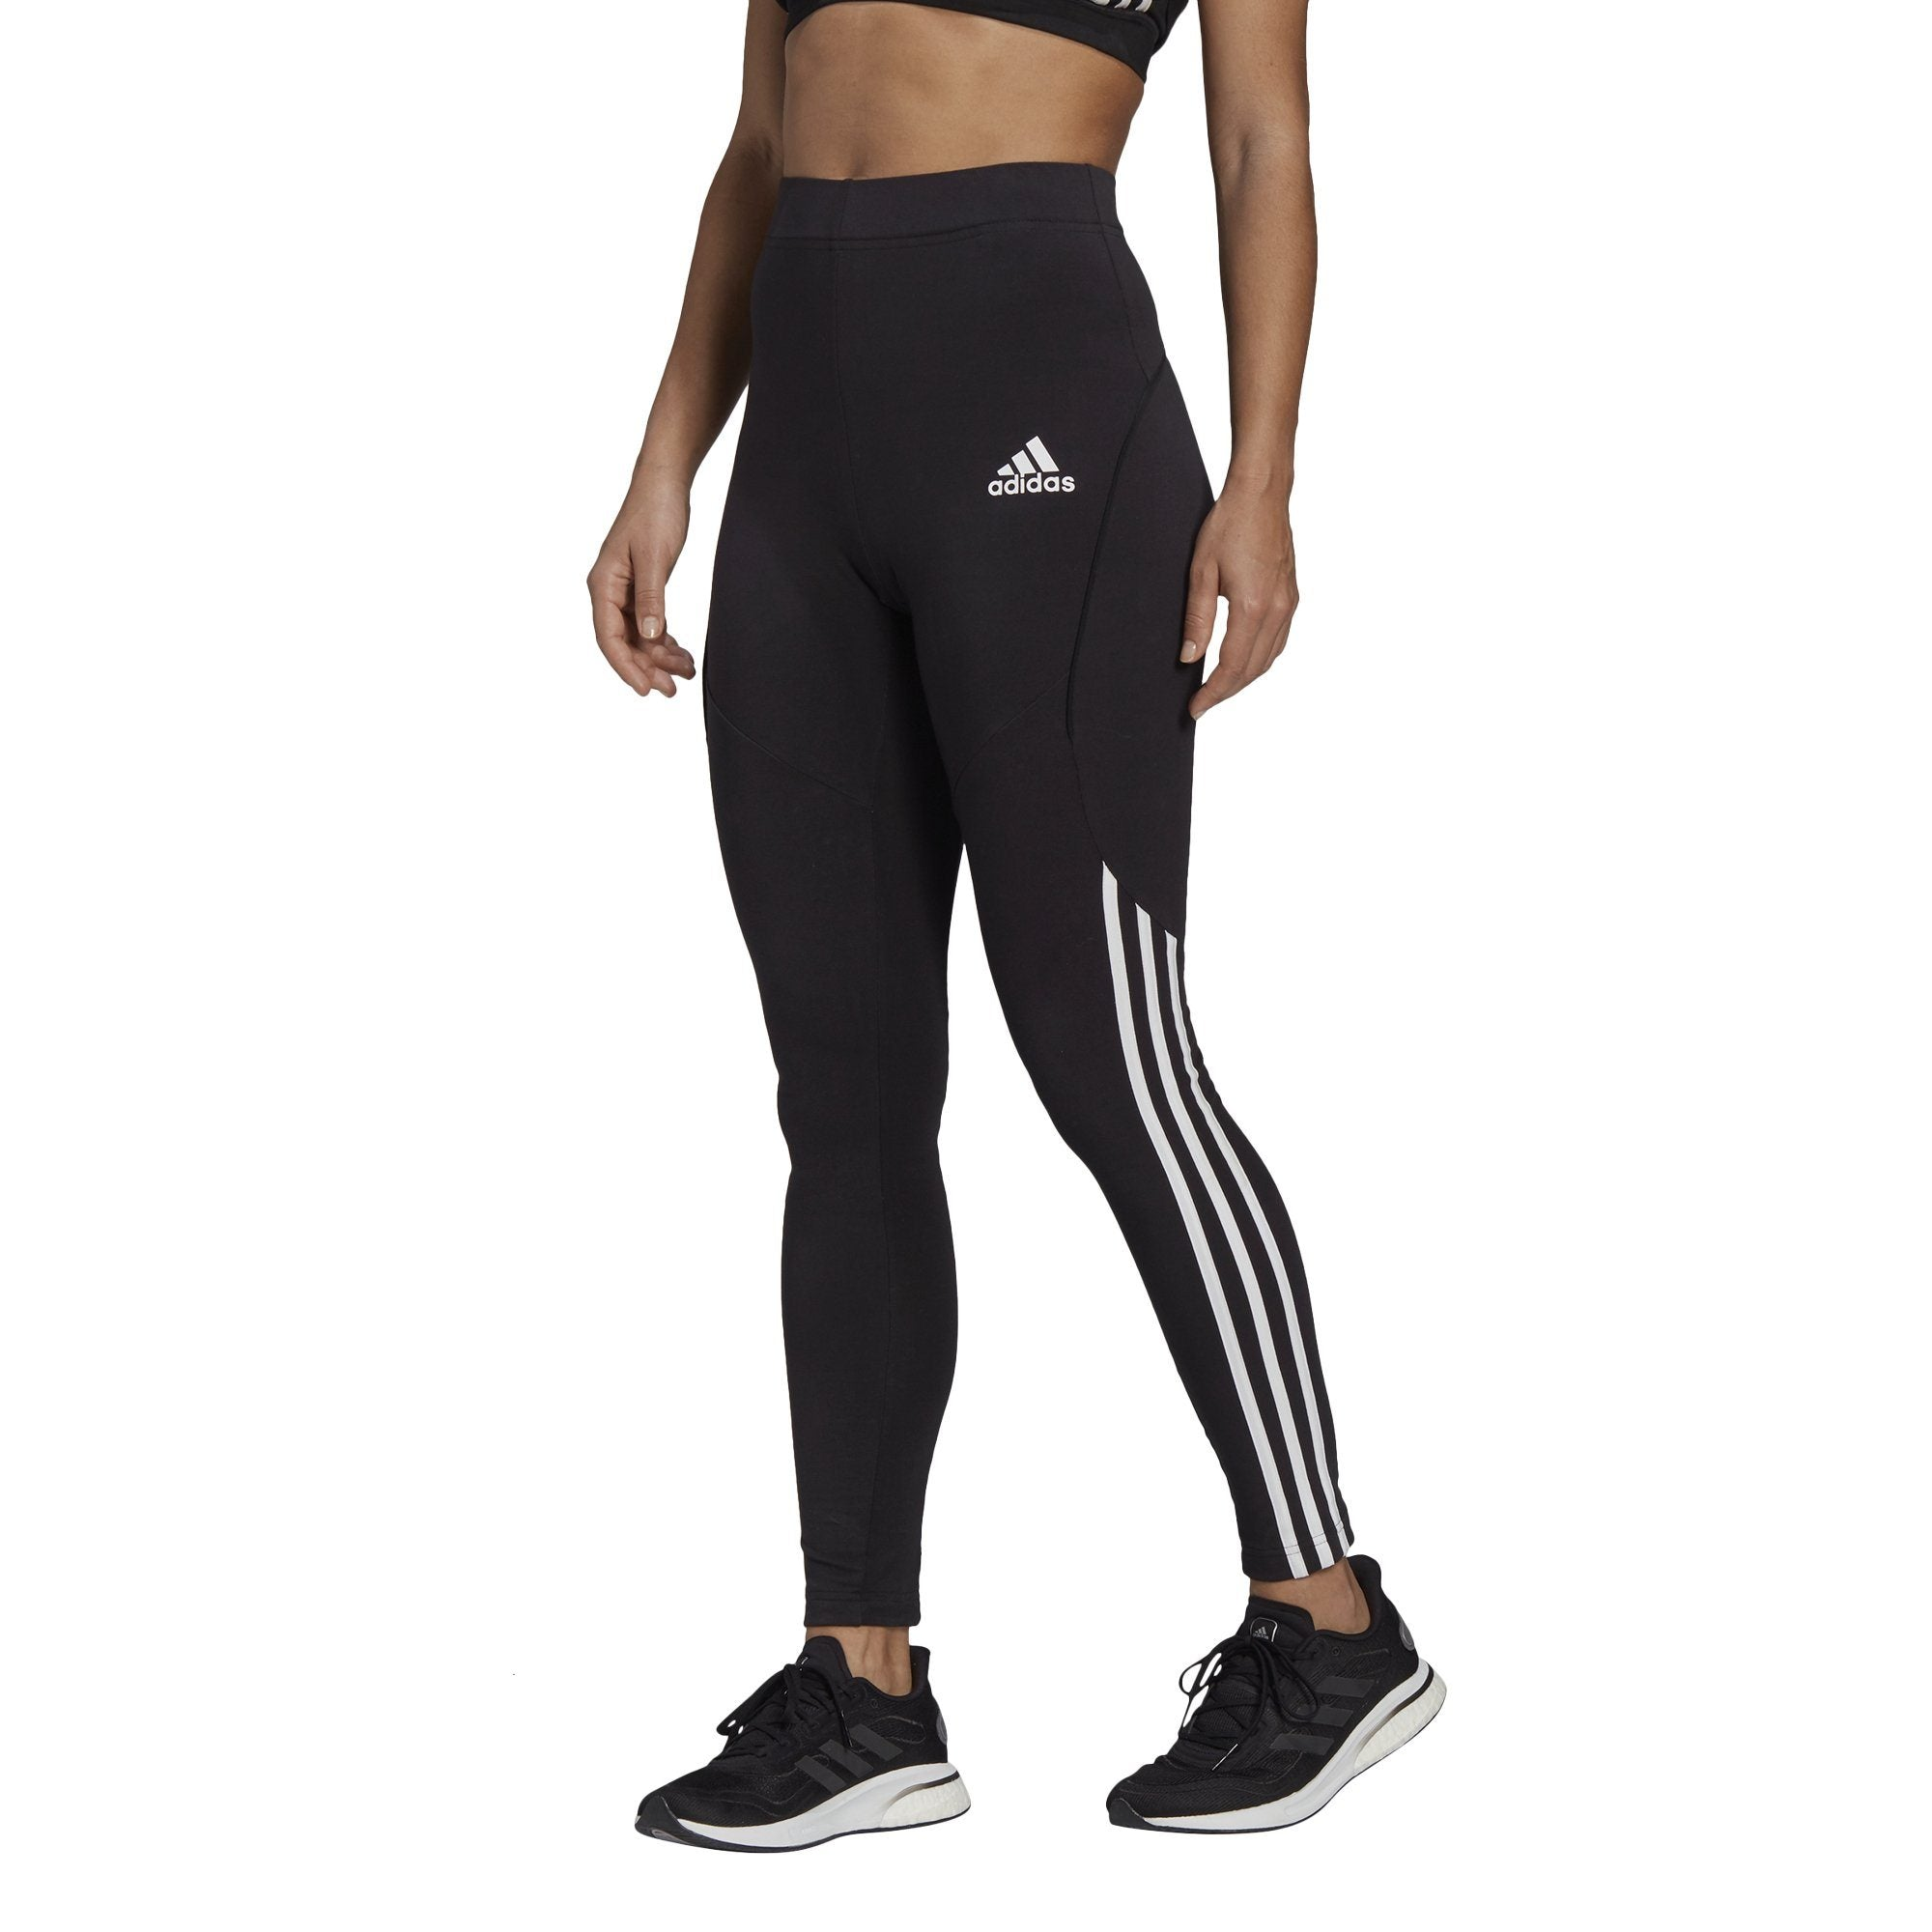 Adidas Womens Sportswear Colourblocked Cotton Tights - Black SP-ApparelTights-Womens Adidas